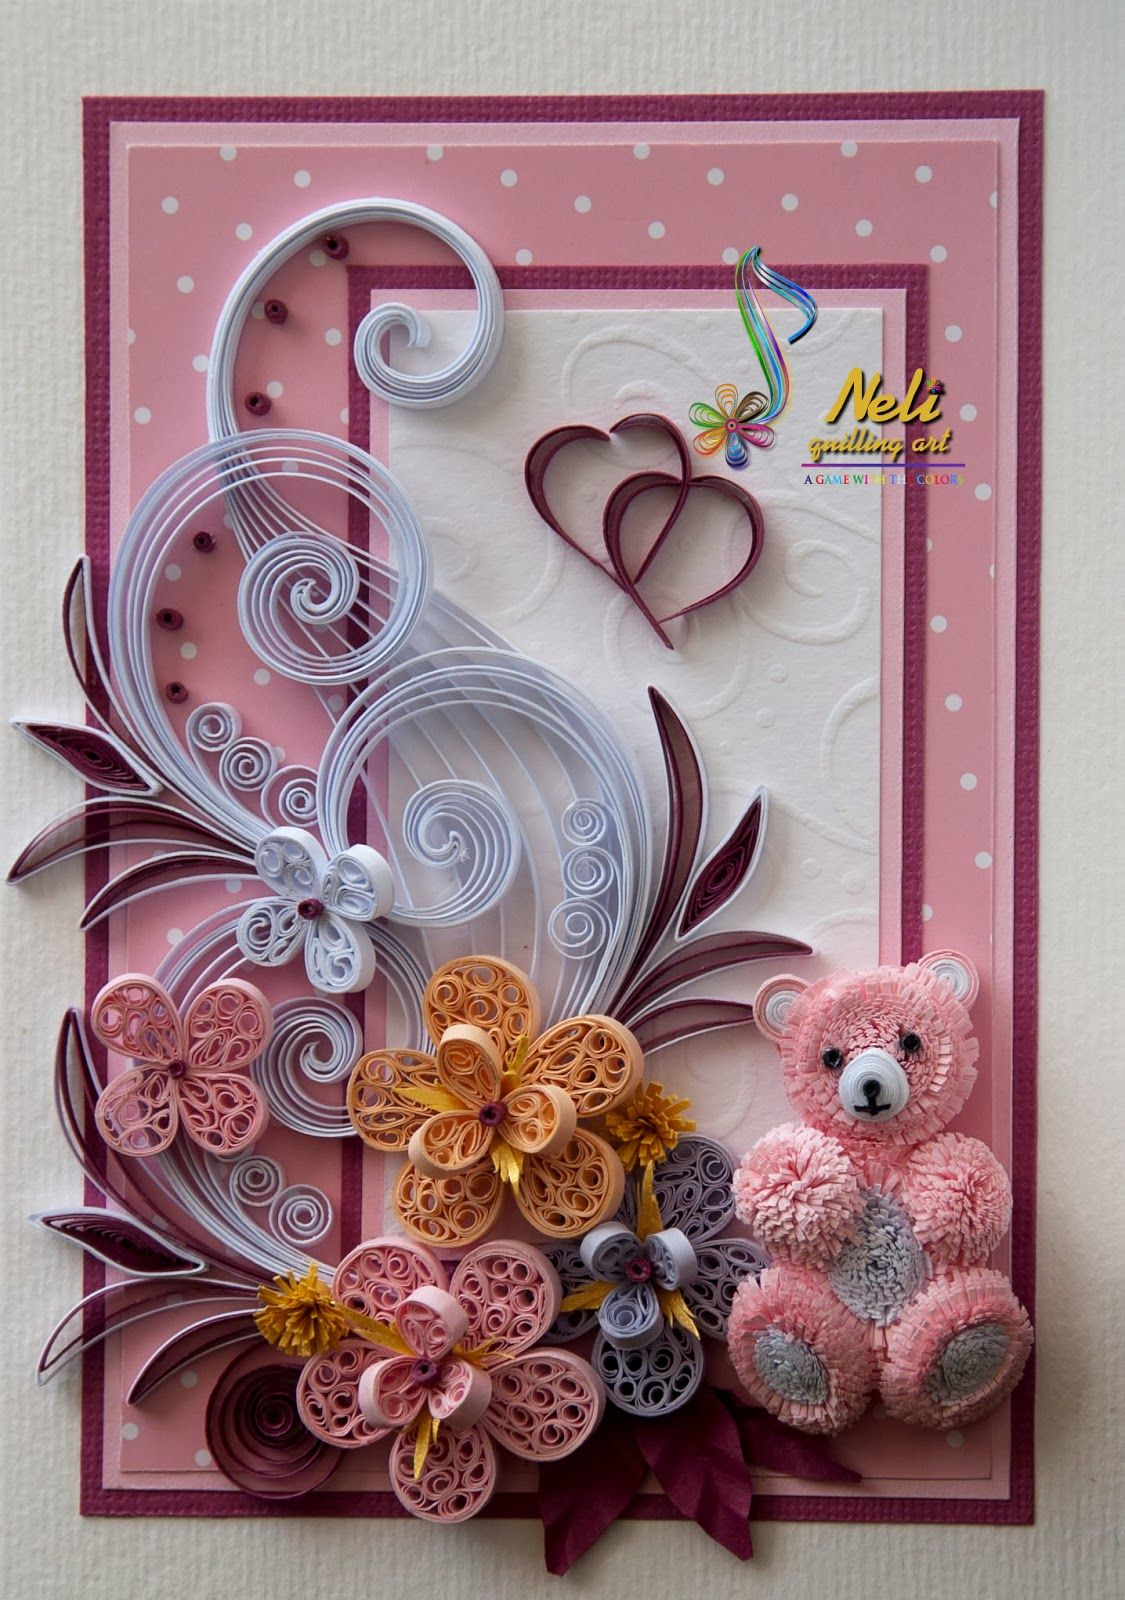 Neli baby and flower quilled card love the teddy also bears rh in pinterest